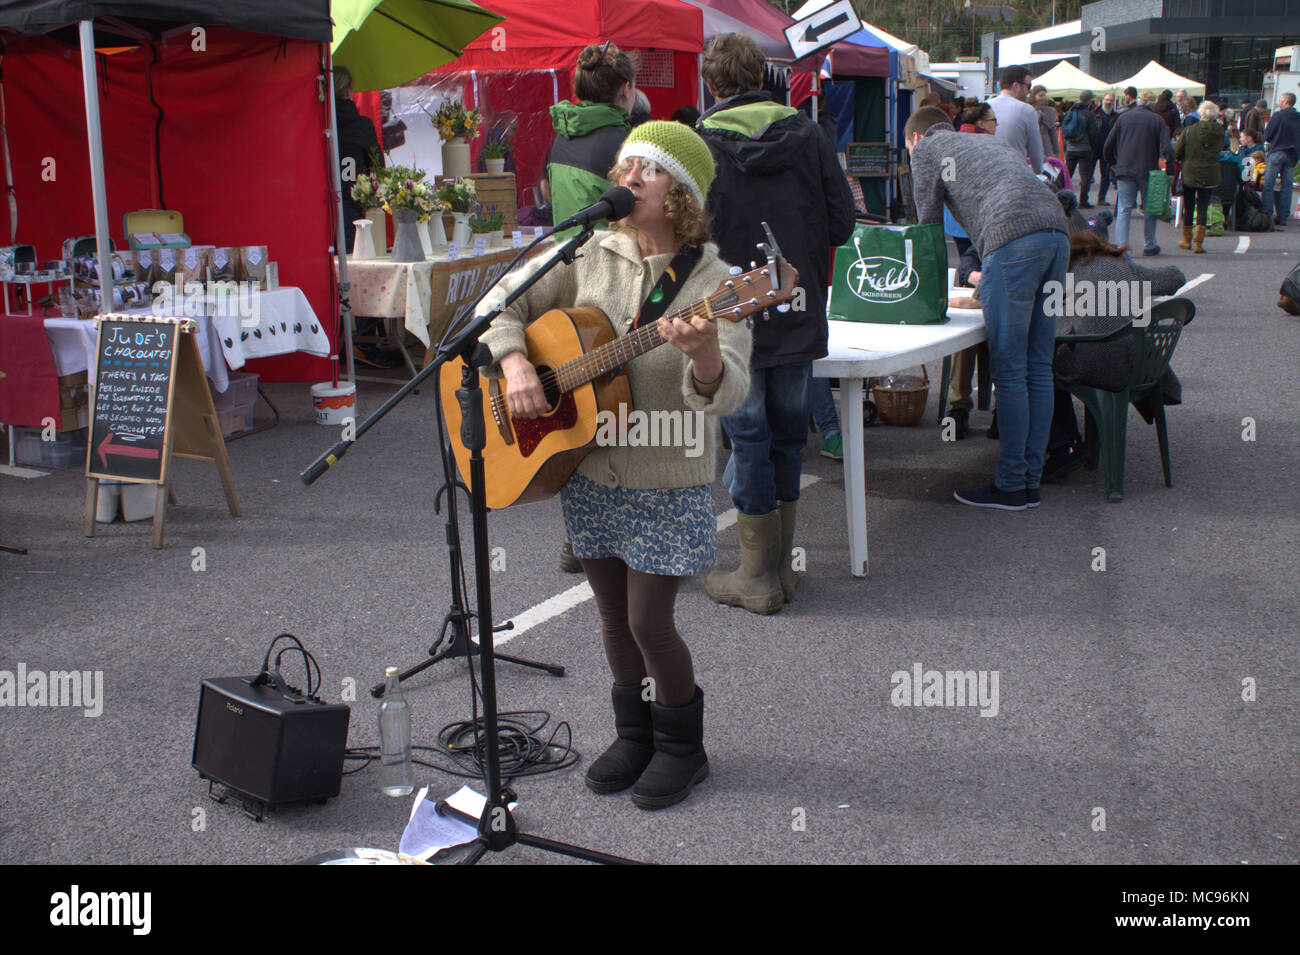 female-busker-playing-a-guitar-on-the-street-at-a-local-country-market-in-skibbereen-west-cork-ireland-a-popular-tourist-and-holiday-makers-town-MC96KN.jpg